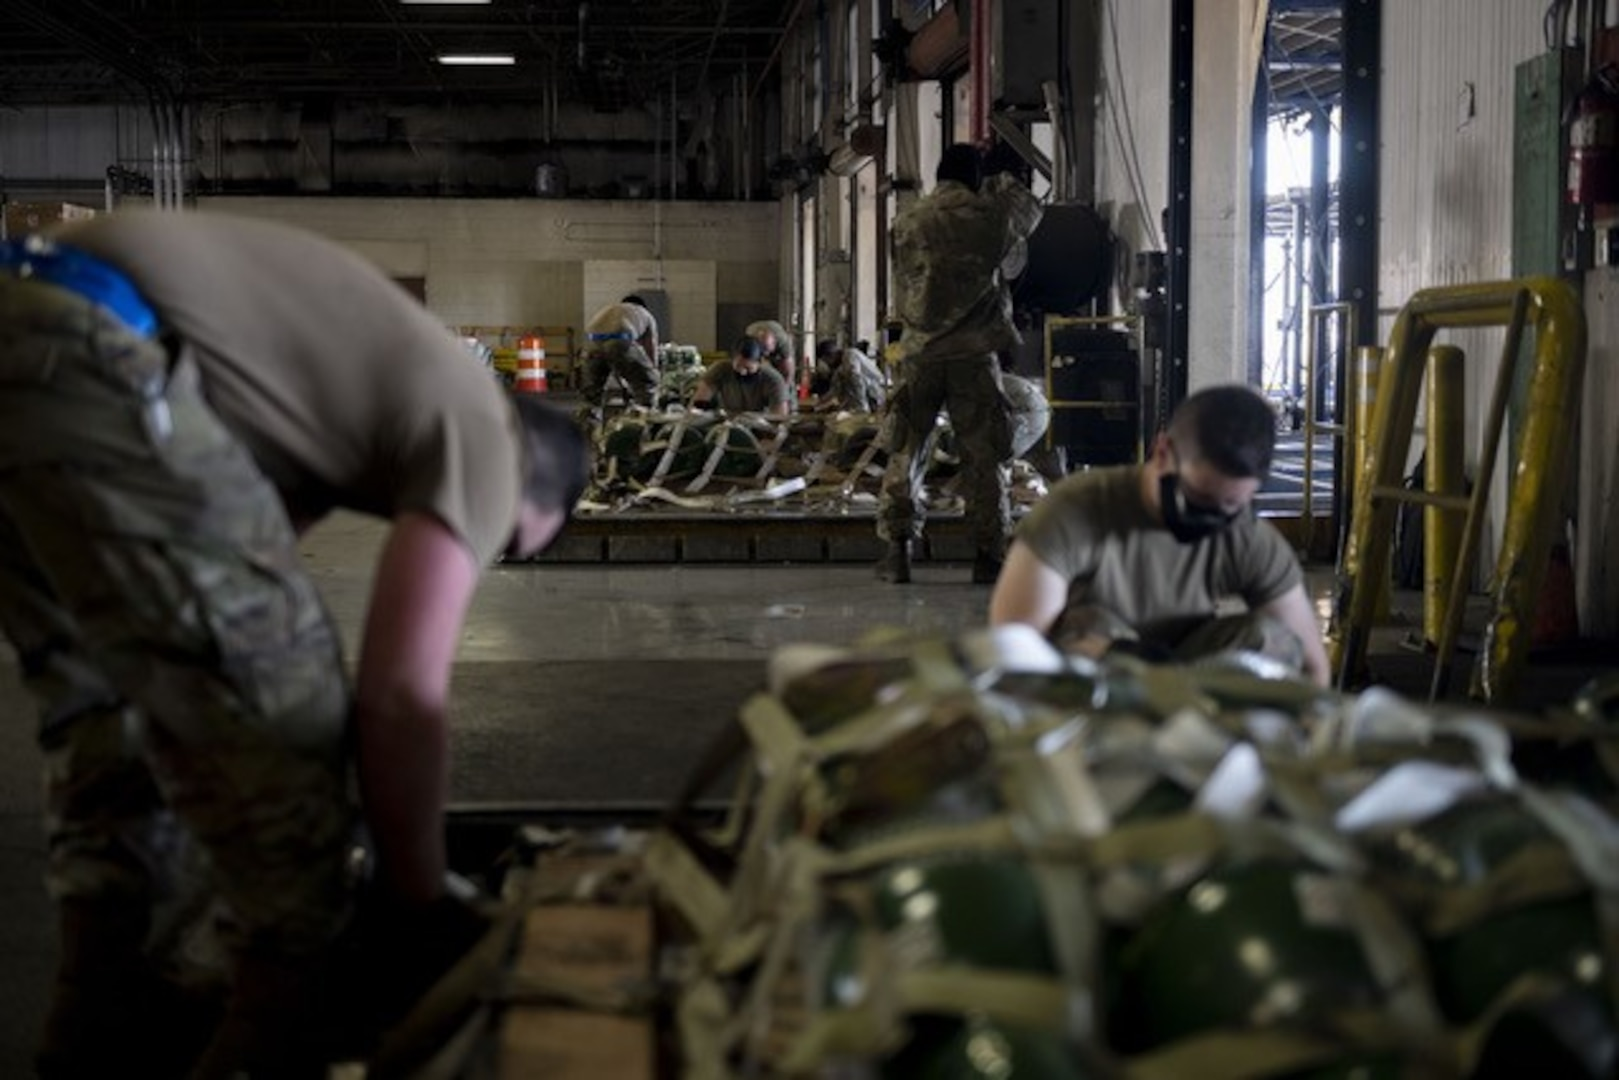 Airmen strap down pallets of cargo with webbing in a warehouse